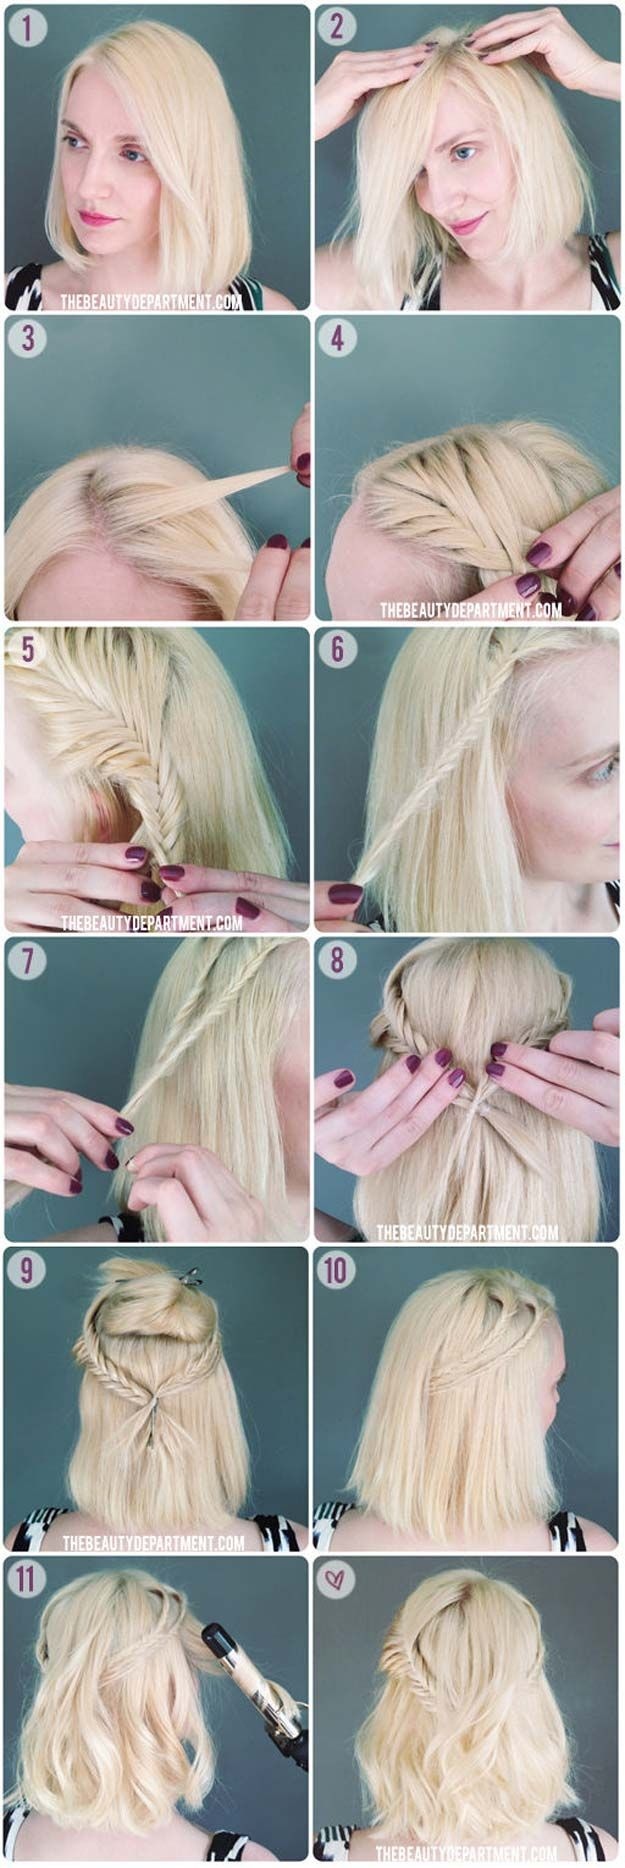 best hairstyles images on pinterest braids haircut styles and